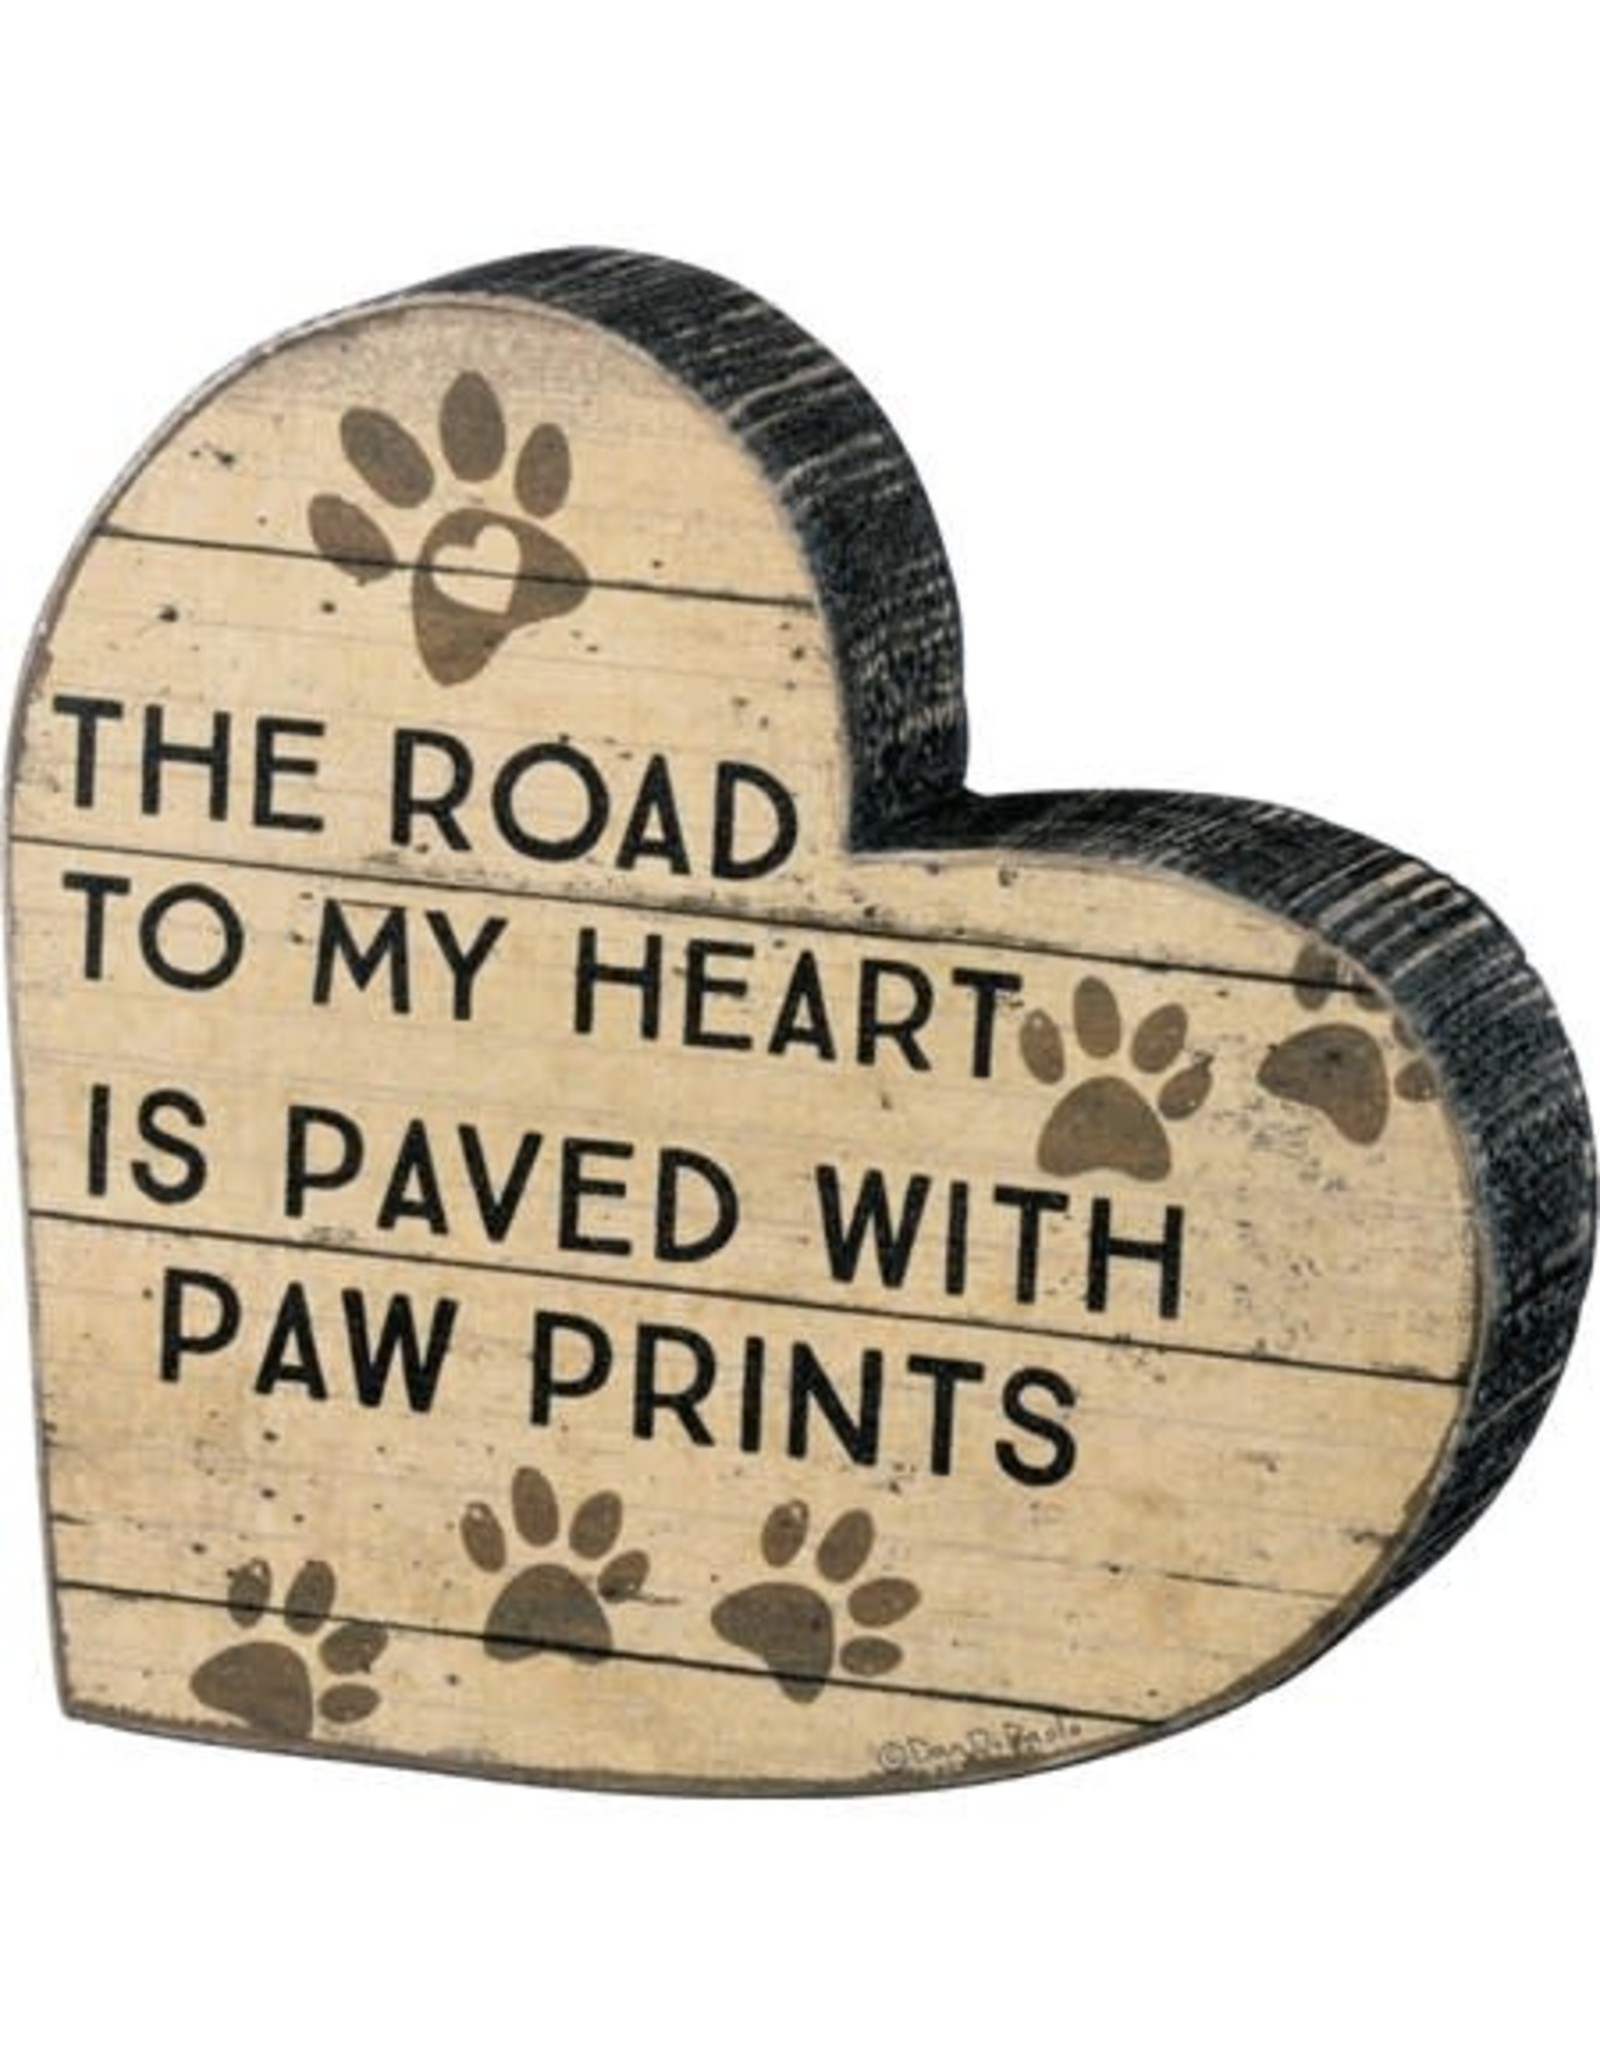 PRIMITIVES BY KATHY PET LOVER BLOCK SIGNS ROAD PAVED WITH PAW PRINTS